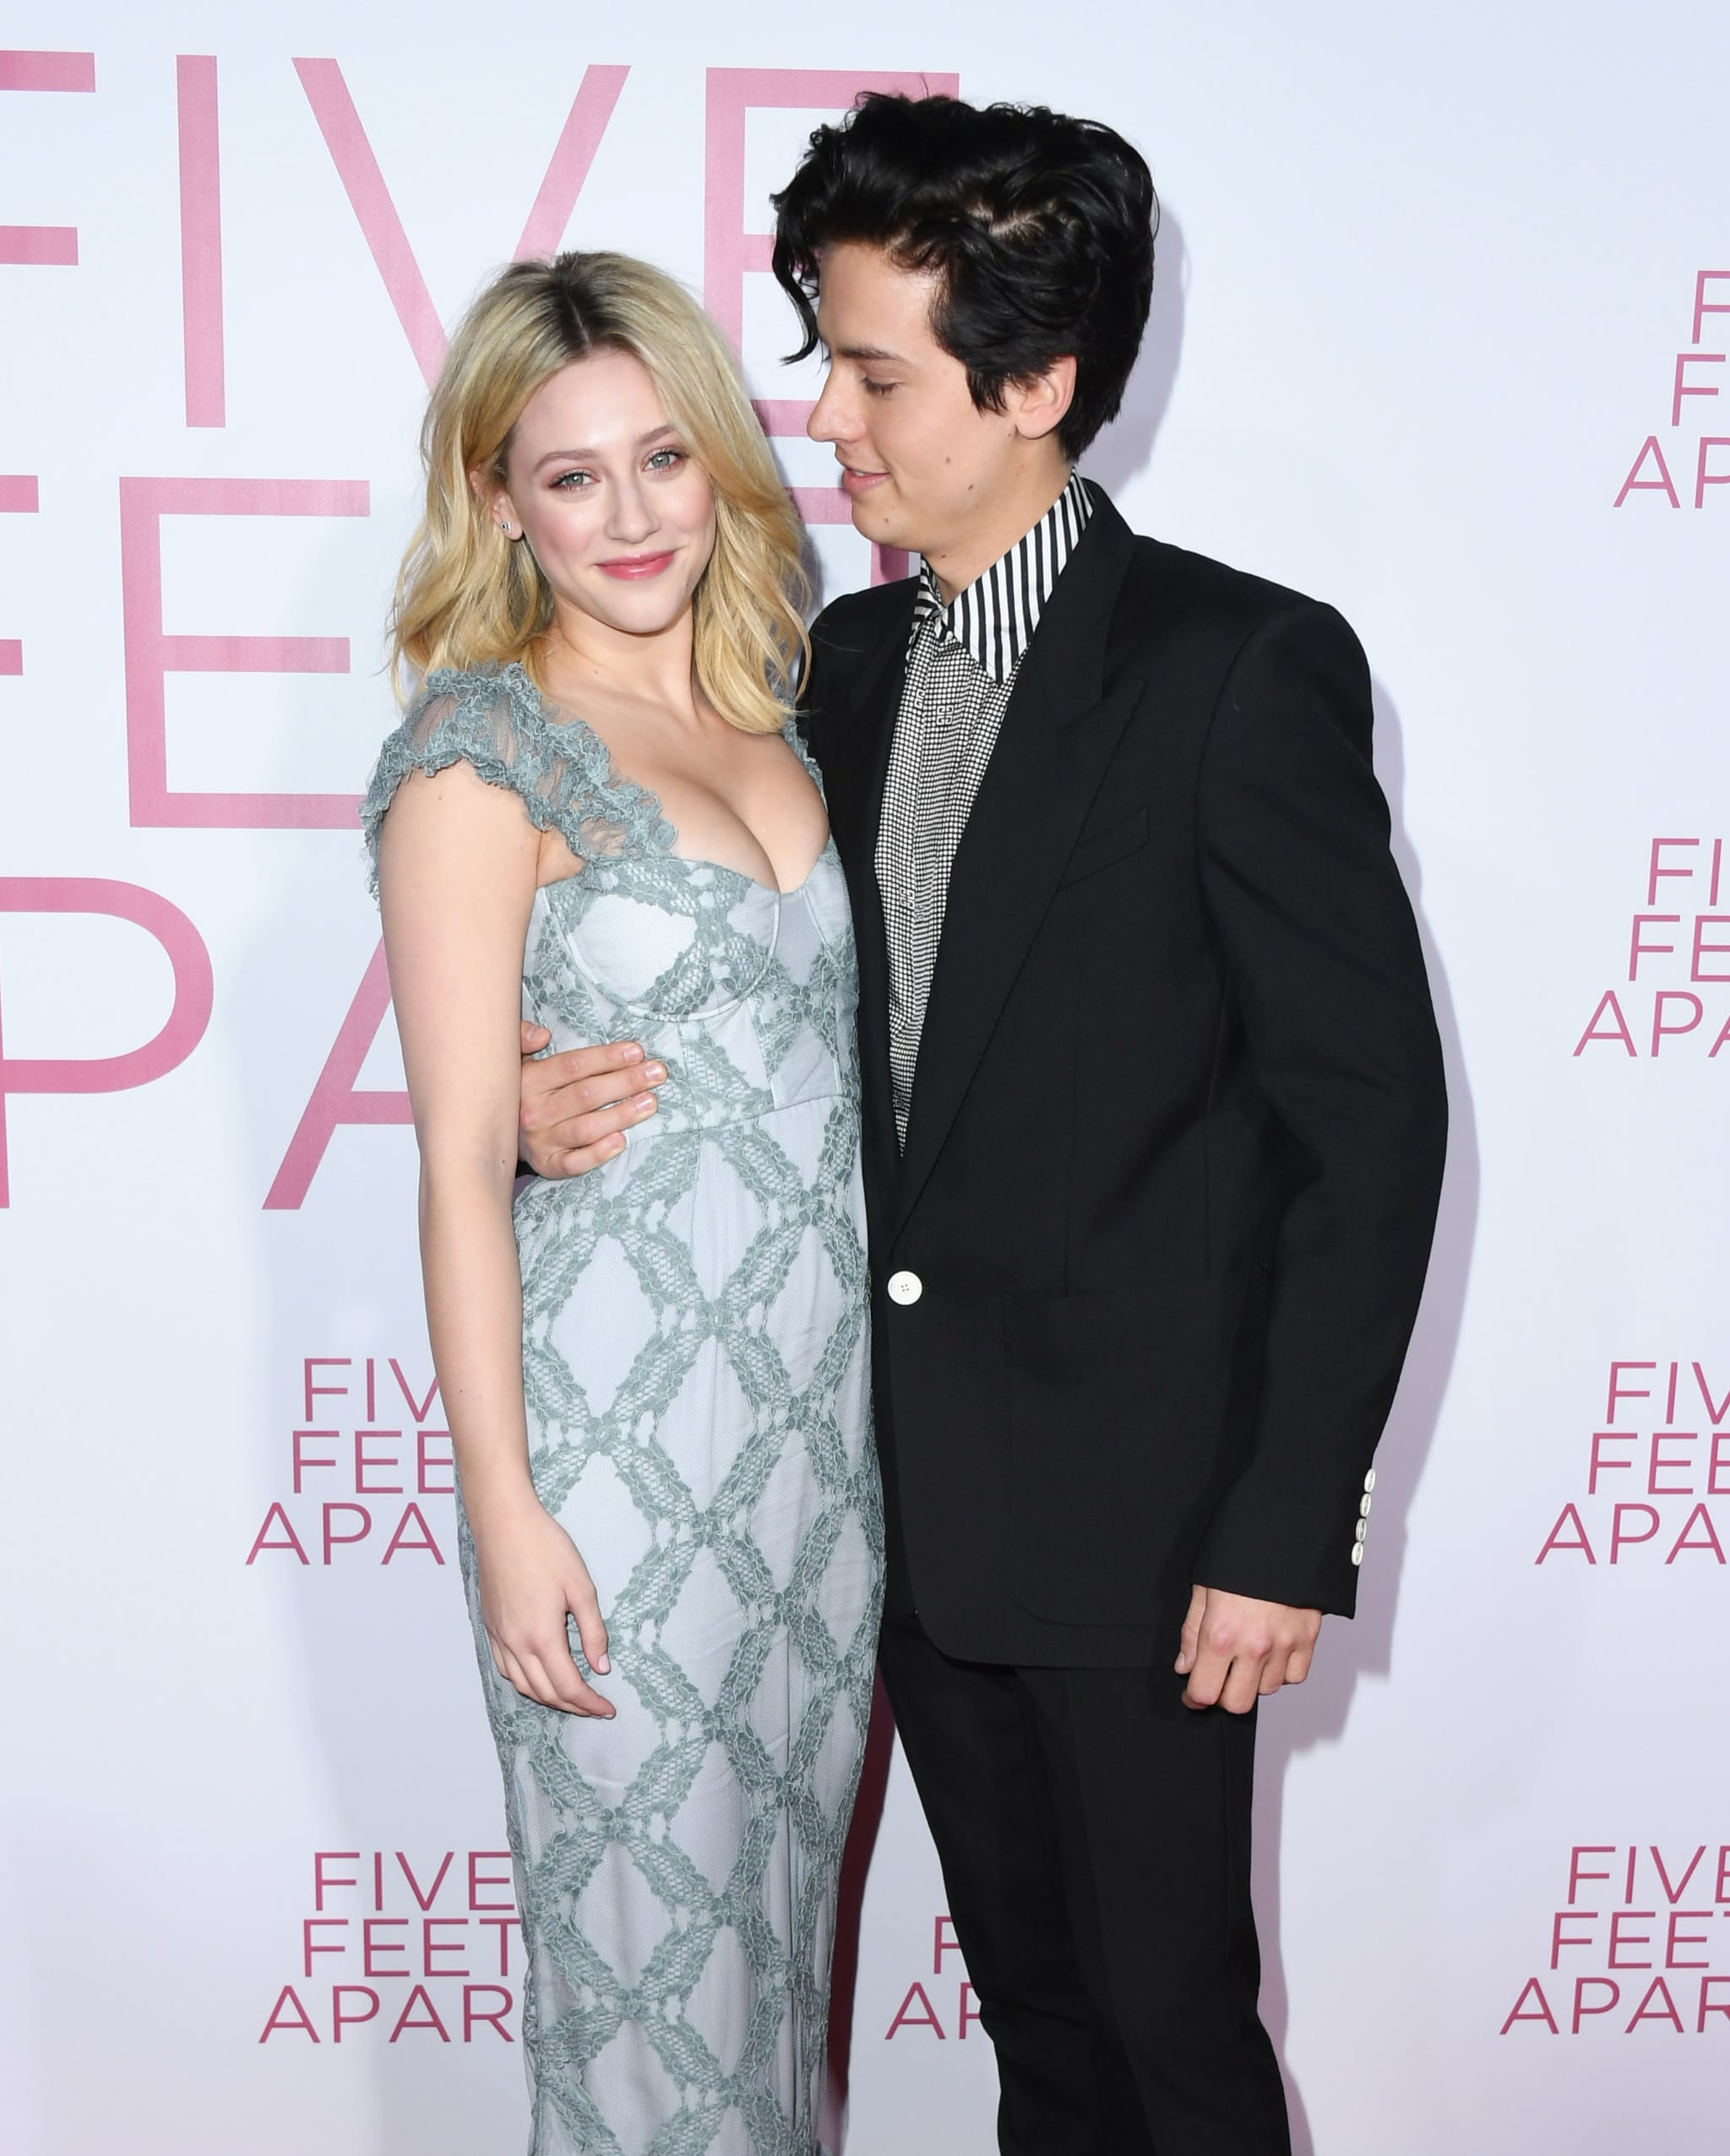 LOS ANGELES, CALIFORNIA - MARCH 07:  Lili Reinhart and Cole Sprouse attend the premiere of Lionsgate's